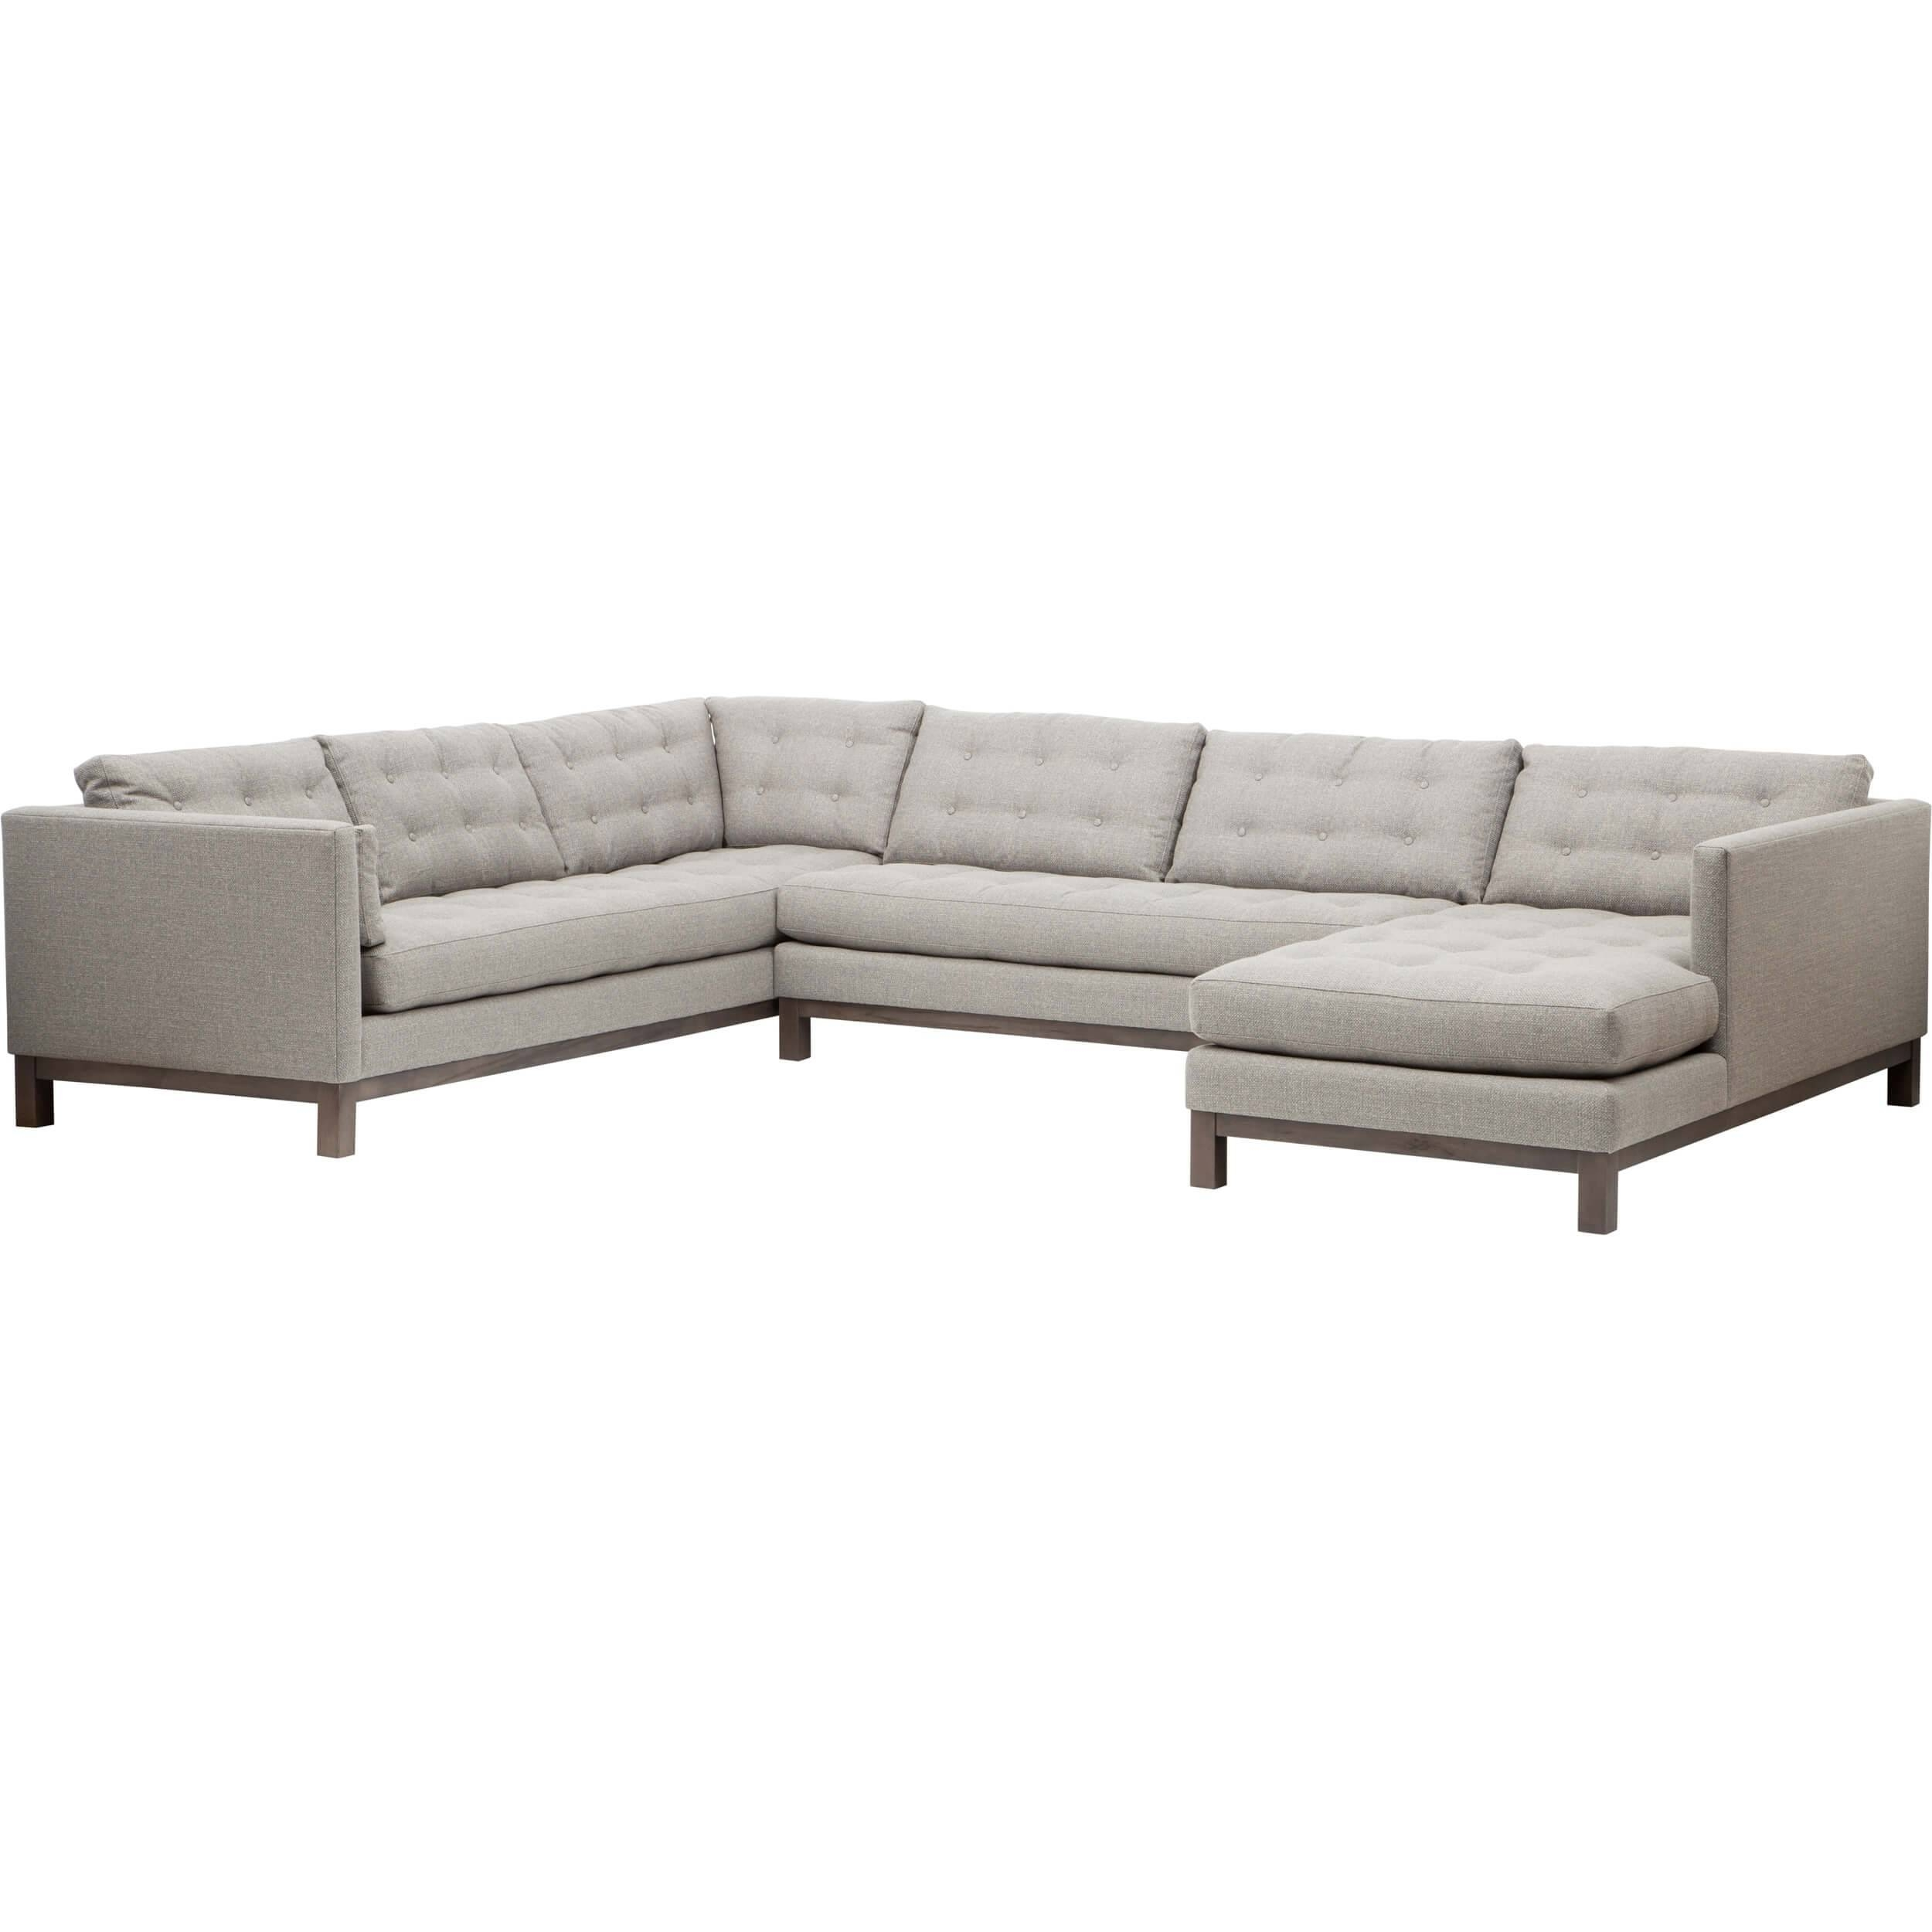 Furniture: Arhaus Furniture Review | Arhaus Sofa | Hadley Sofa inside Arhaus Leather Sofas (Image 6 of 15)